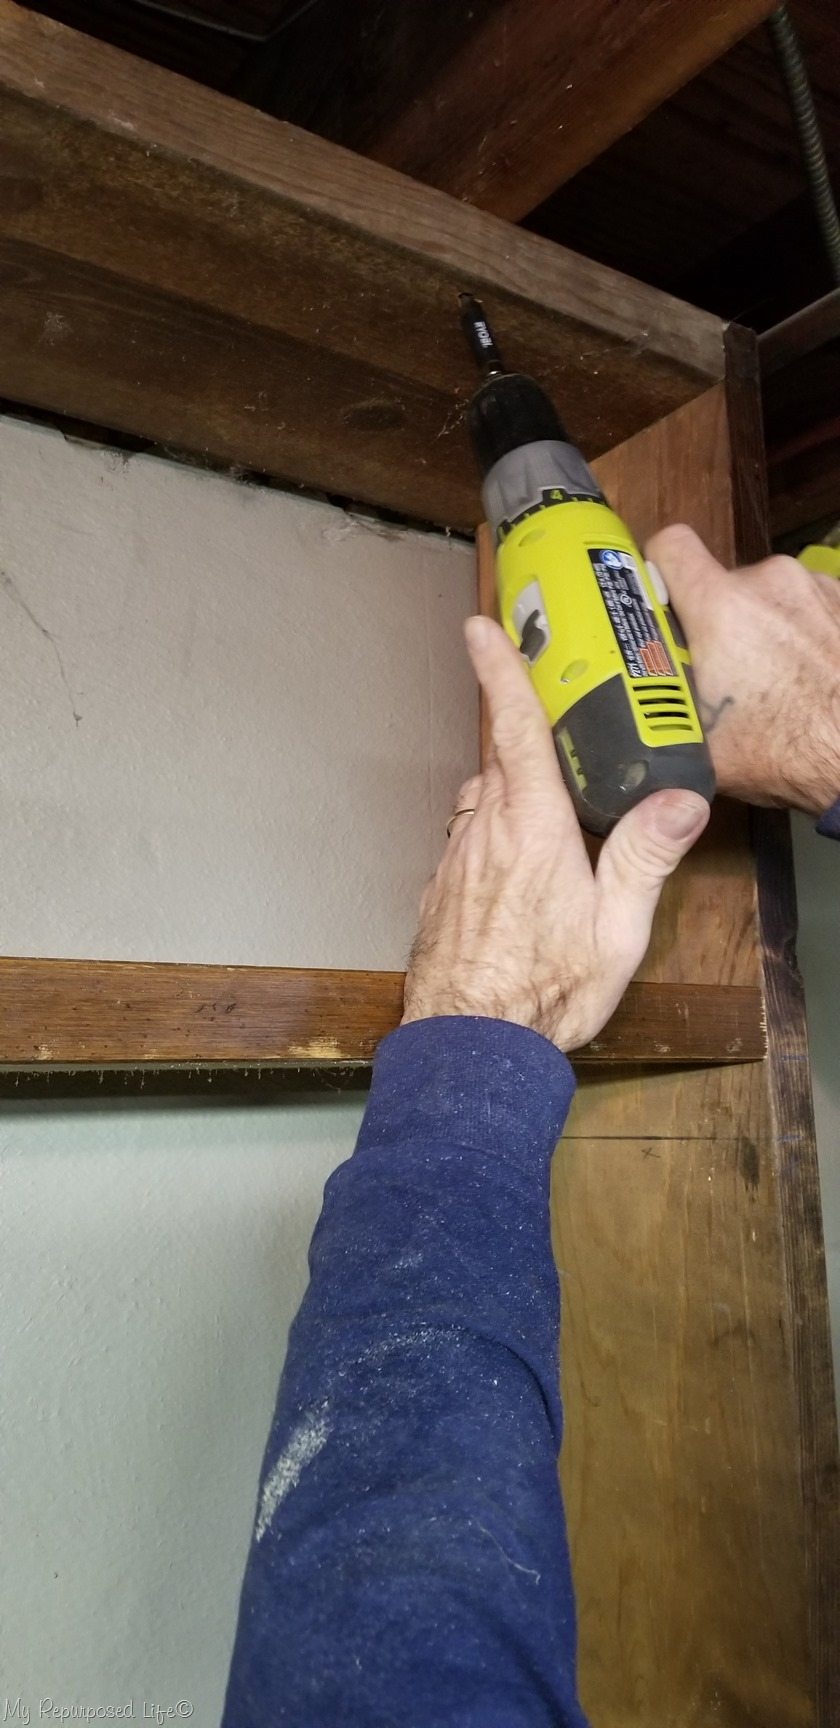 secure shelf to ceiling rafters